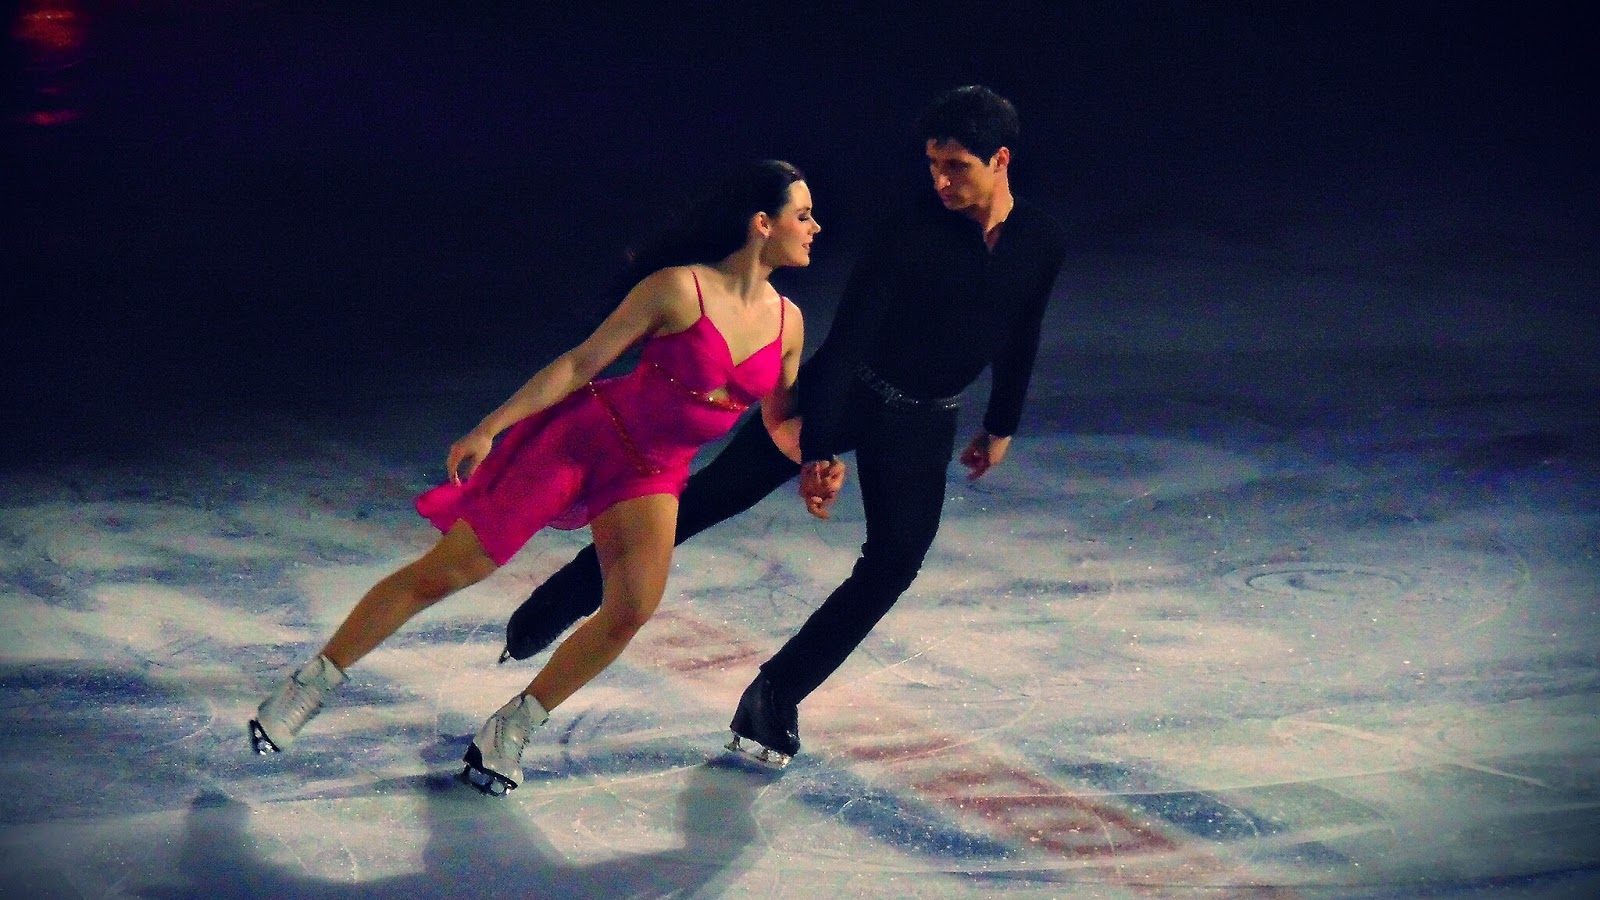 Tessa Virtue and Scott Moir - Ice Dance